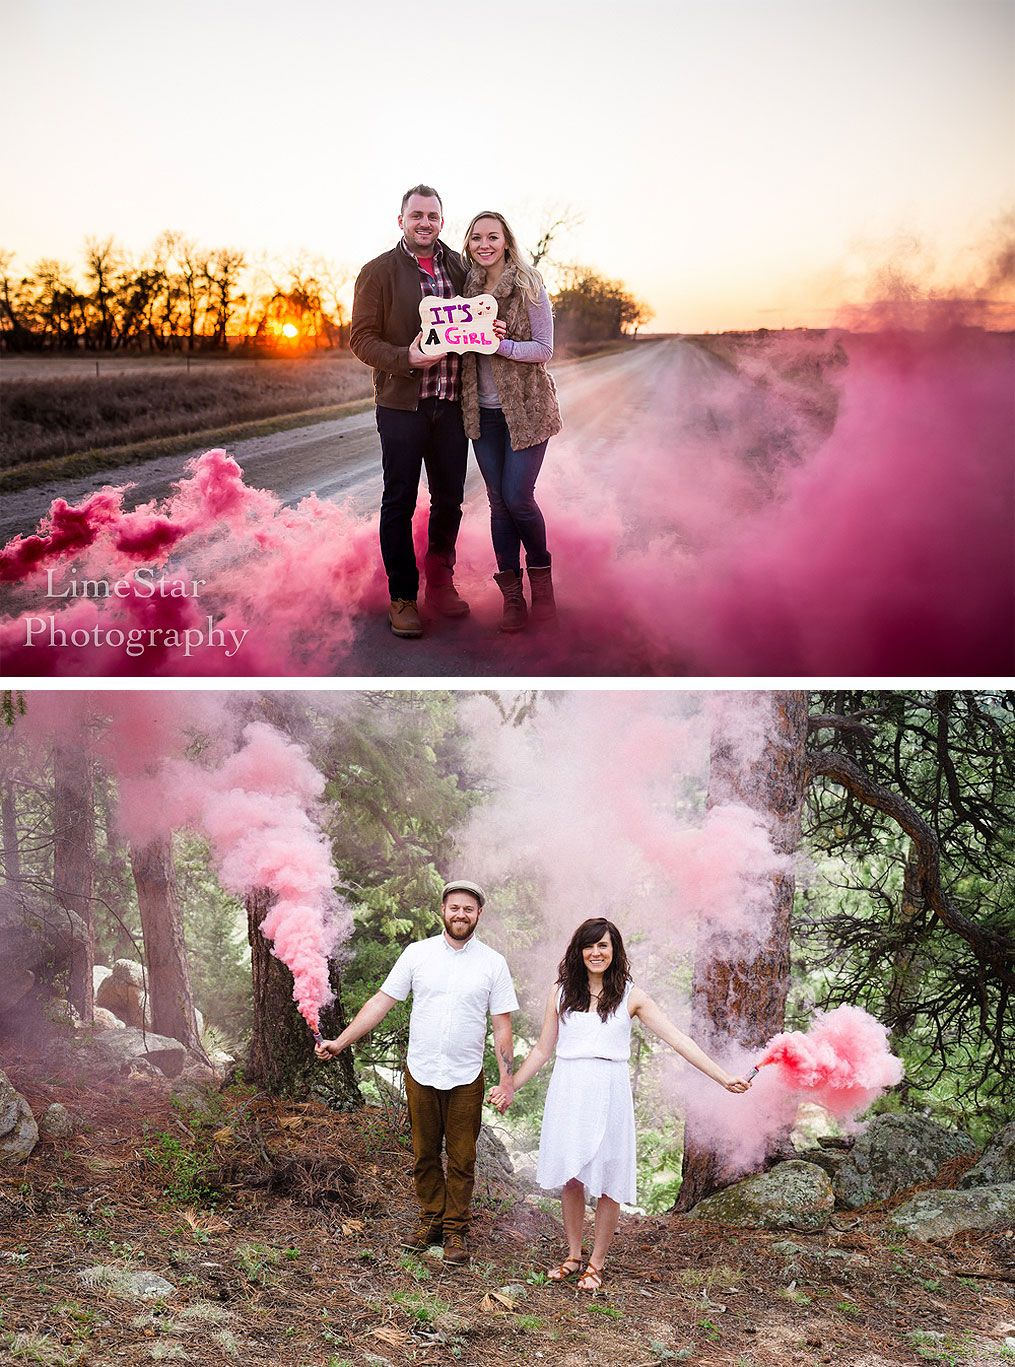 30 Creative Gender Reveal Ideas For Your Announcement Creative Gender Reveals Baby Gender Reveal Party Baby Reveal Party